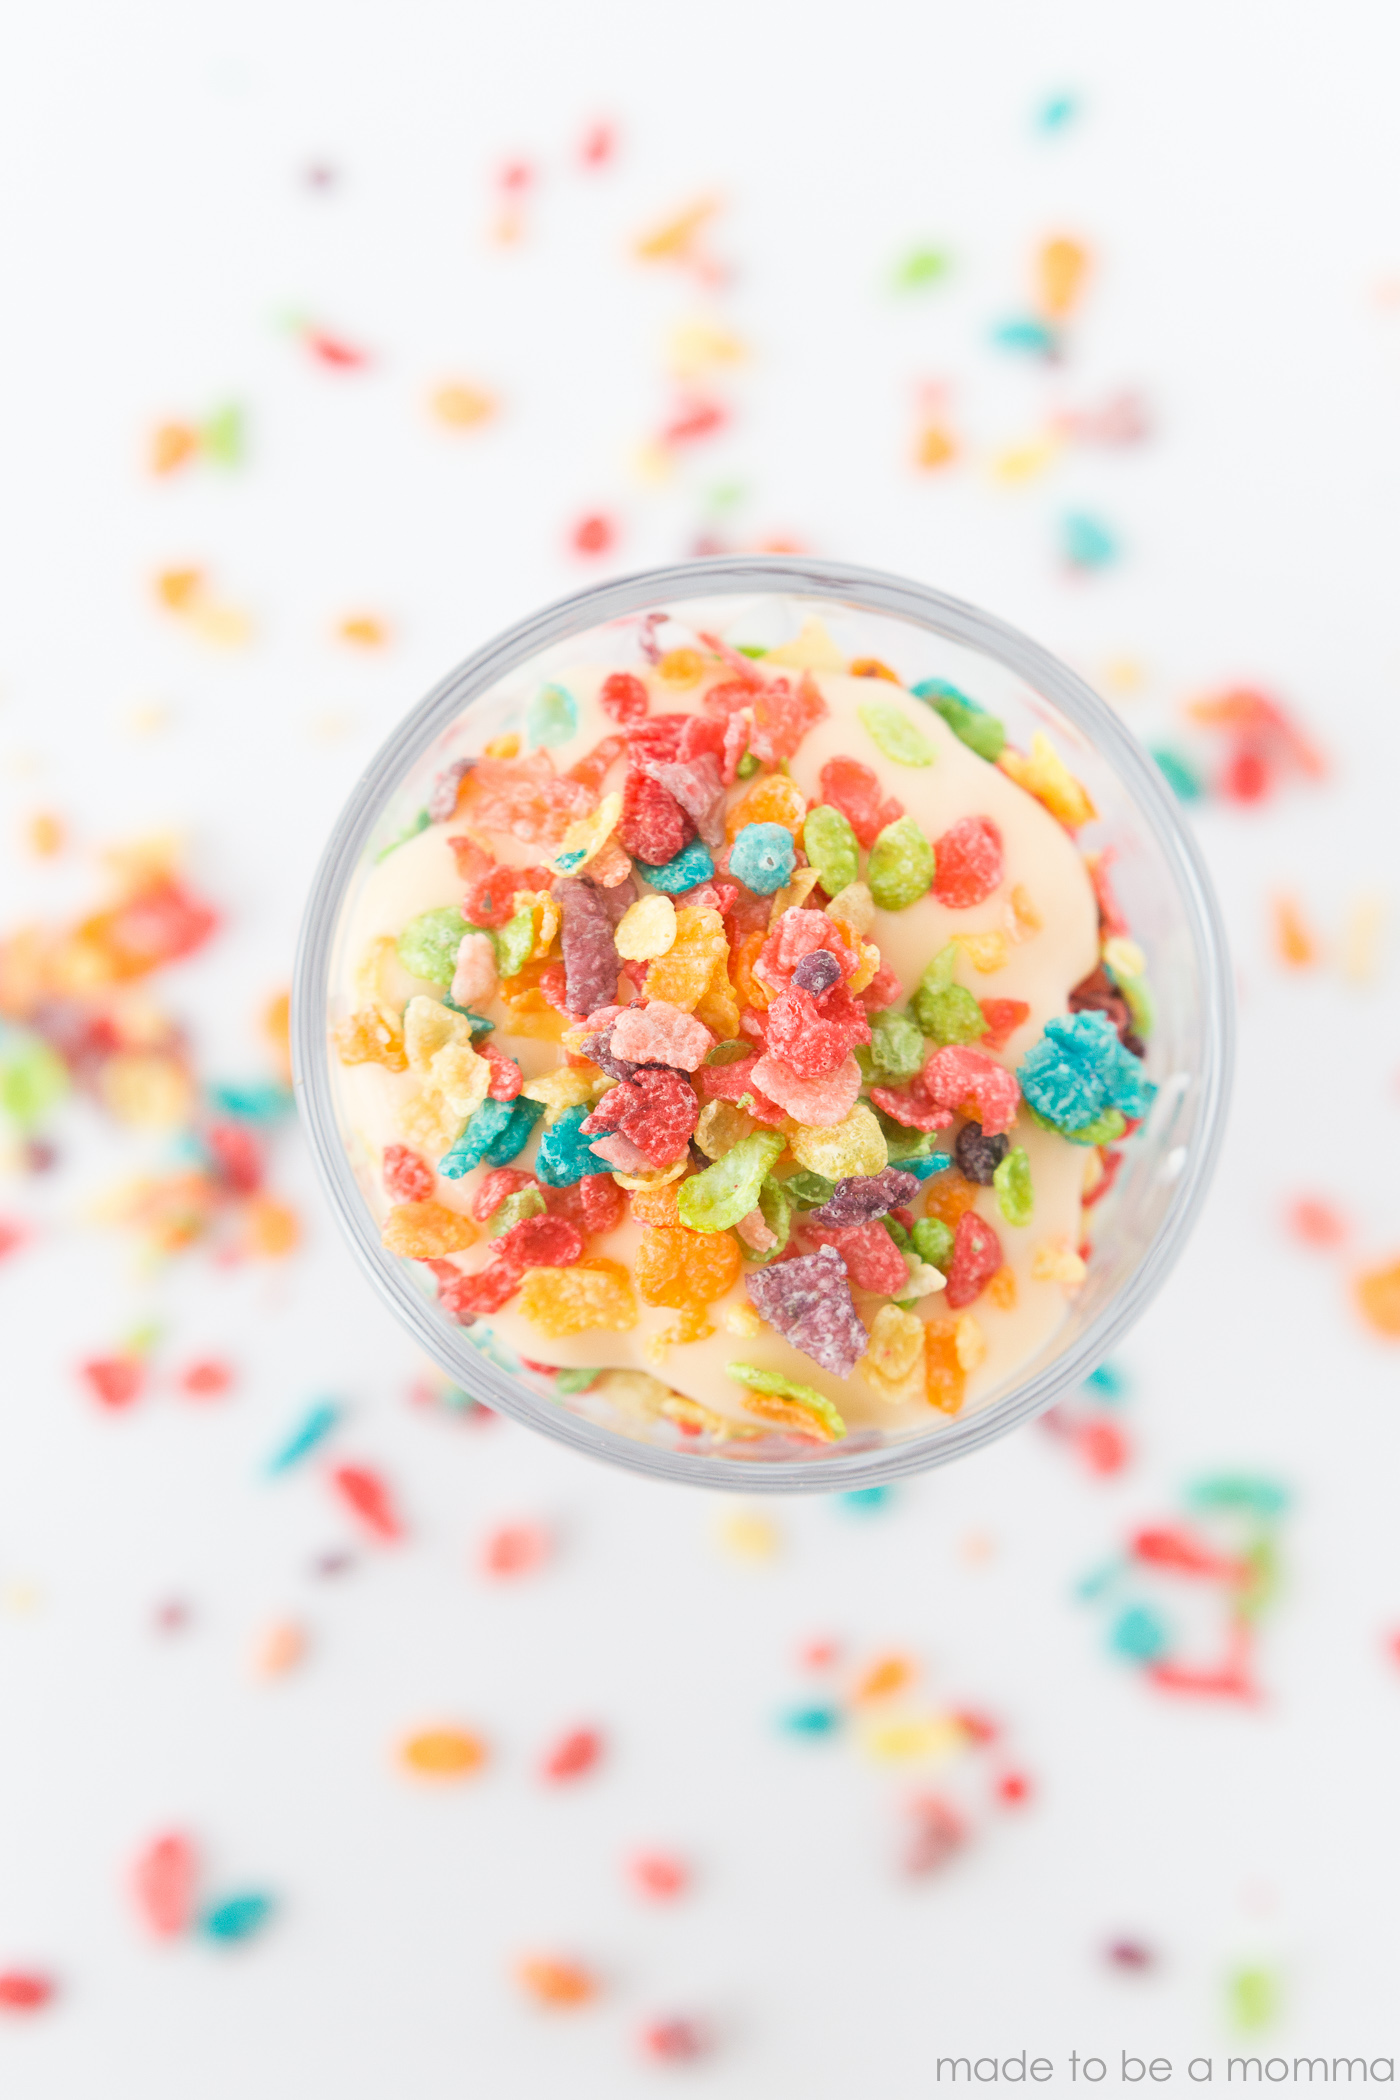 These Rainbow Parfaits are a colorful and yummy treat for the kids